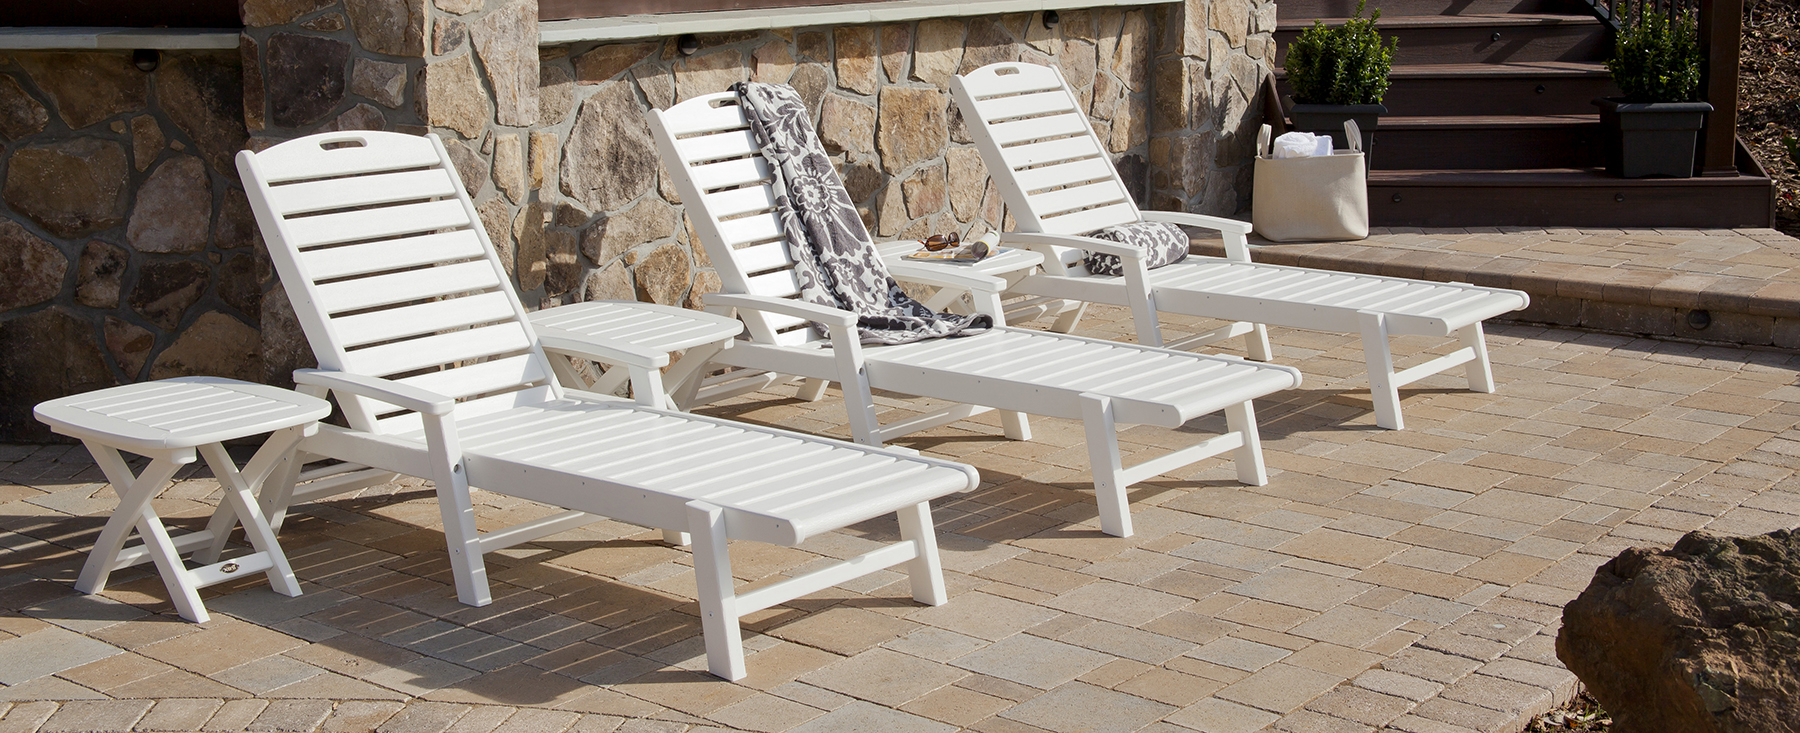 Most Recently Released All Weather Rattan Wicker Chaise Lounges With Regard To The Shopper's Guide To Buying An Outdoor Chaise Lounge (View 21 of 25)